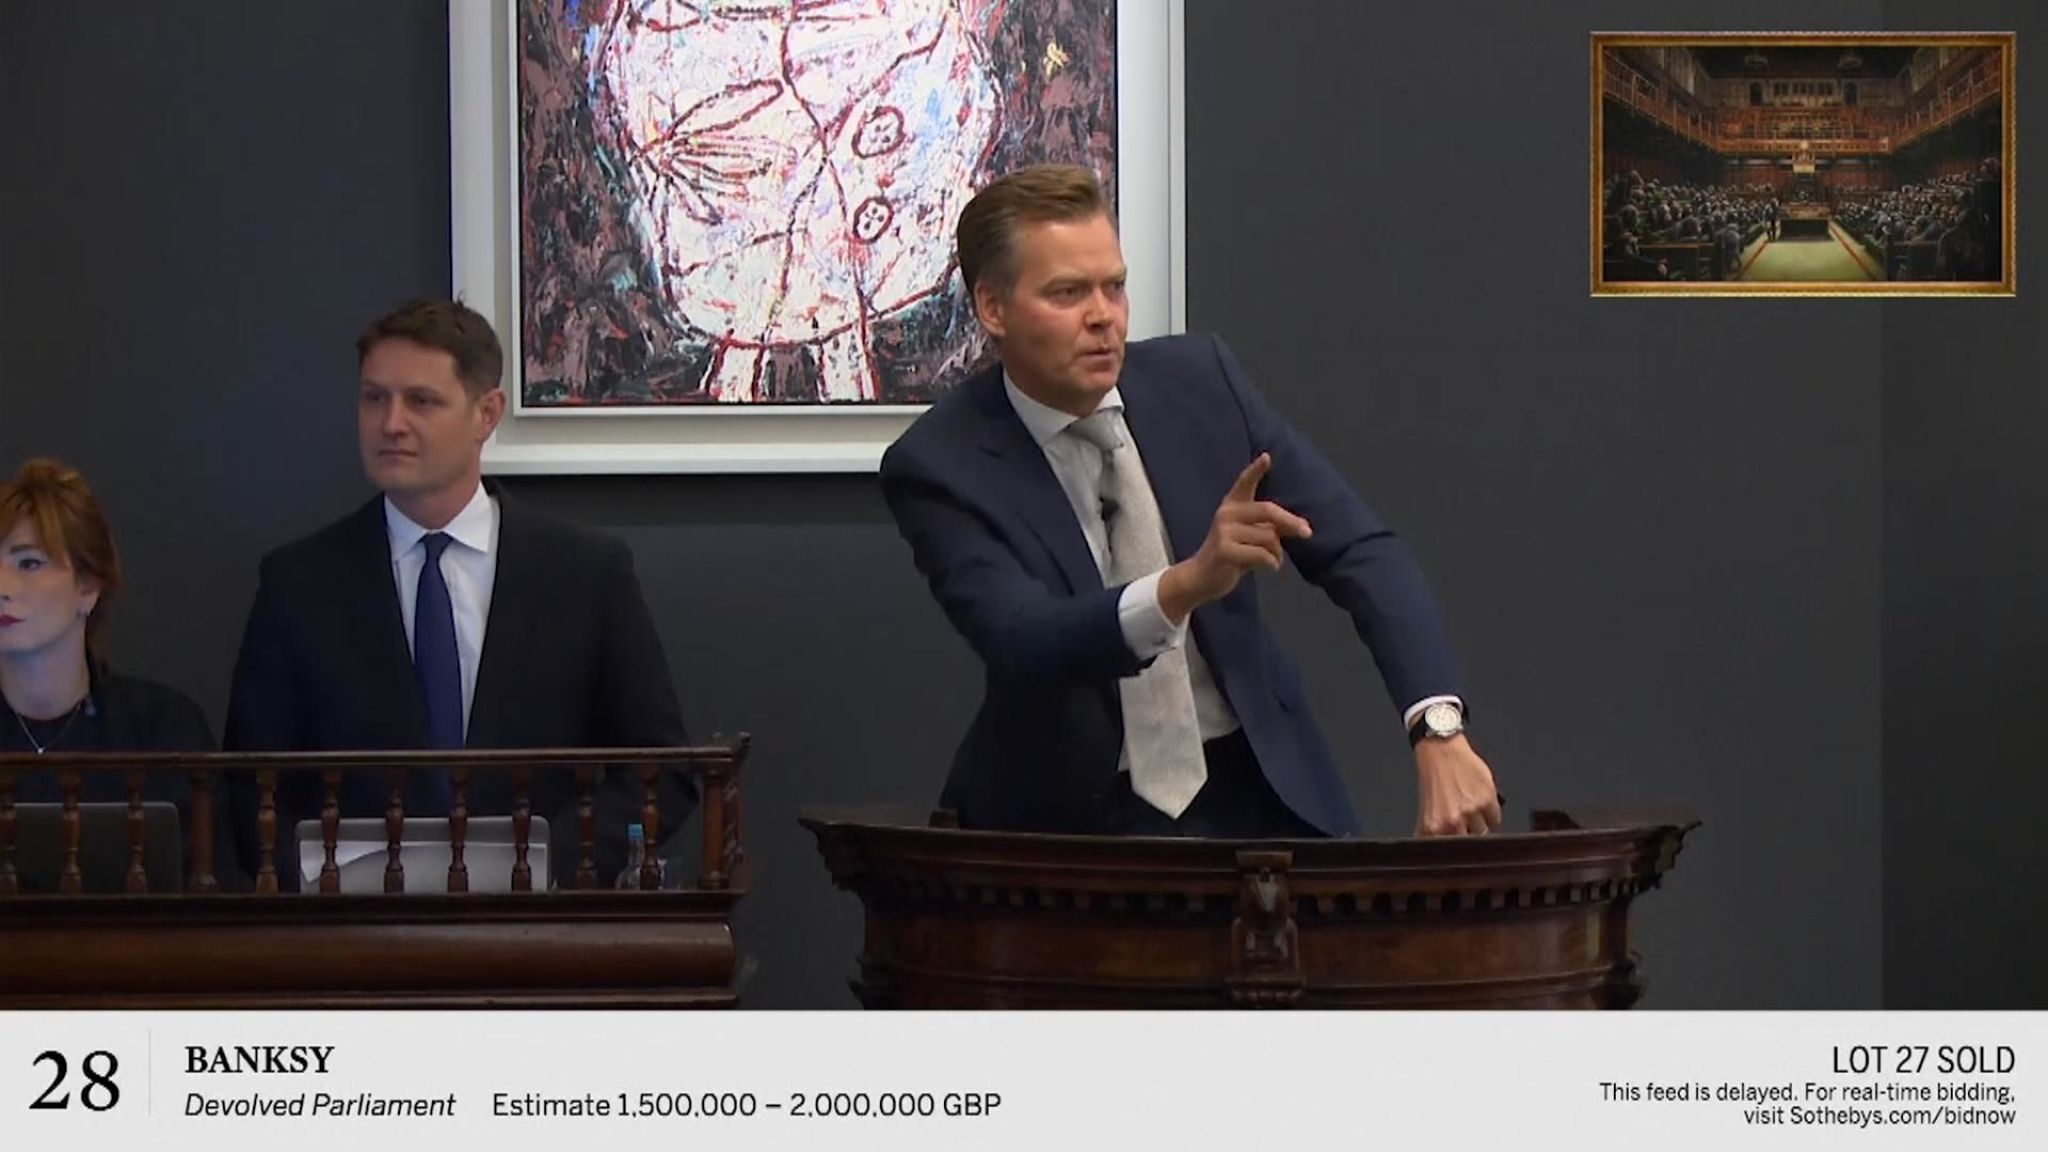 The auction house had expected it to sell 'Devolved Parliament' for between £1.5 ($1.85 million) and £2.5 million ($3.1 million)